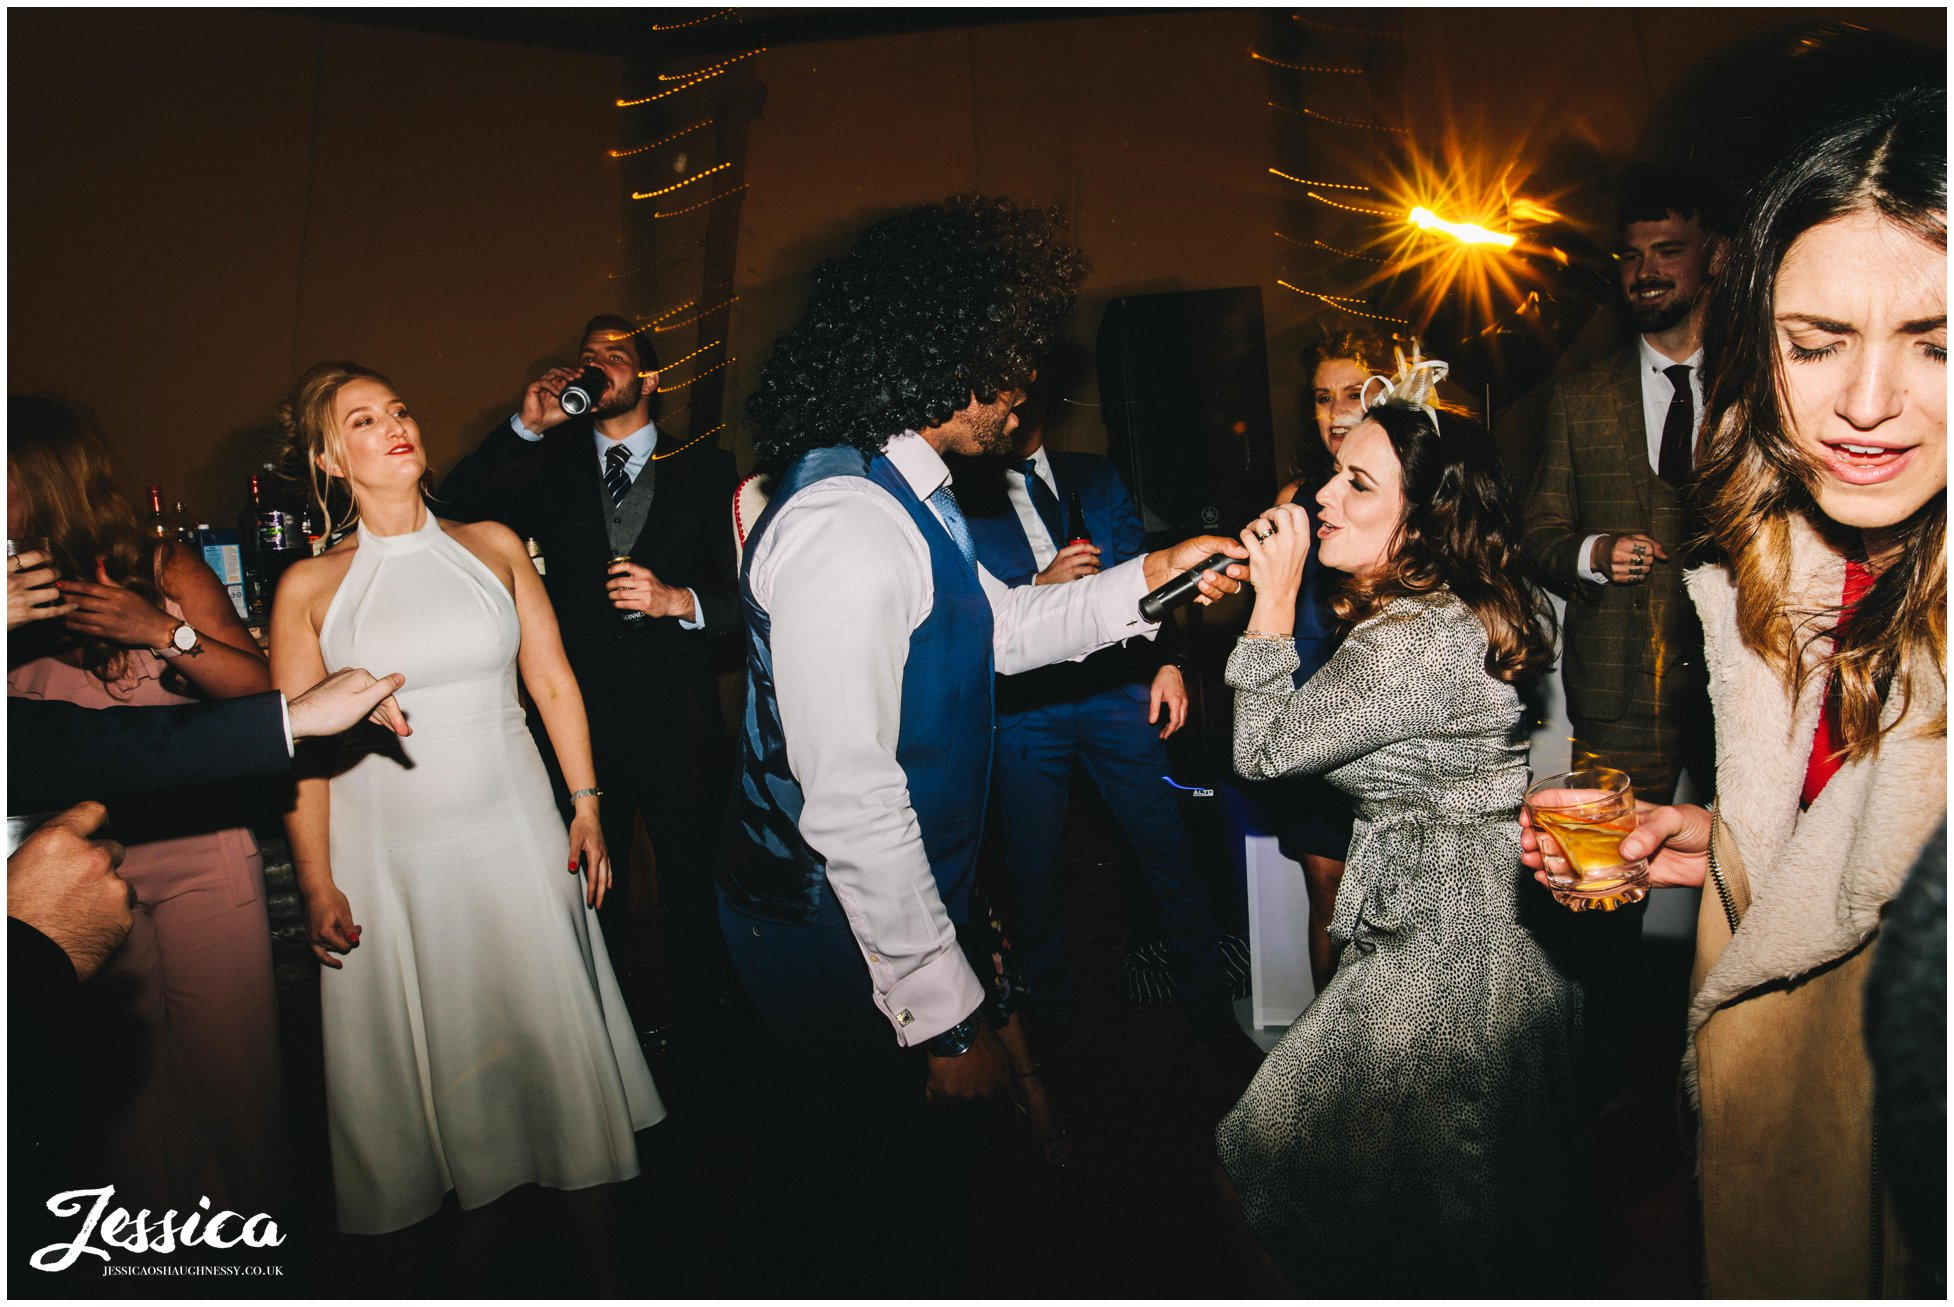 DJ brings microphone onto the dancefloor for guests to sing